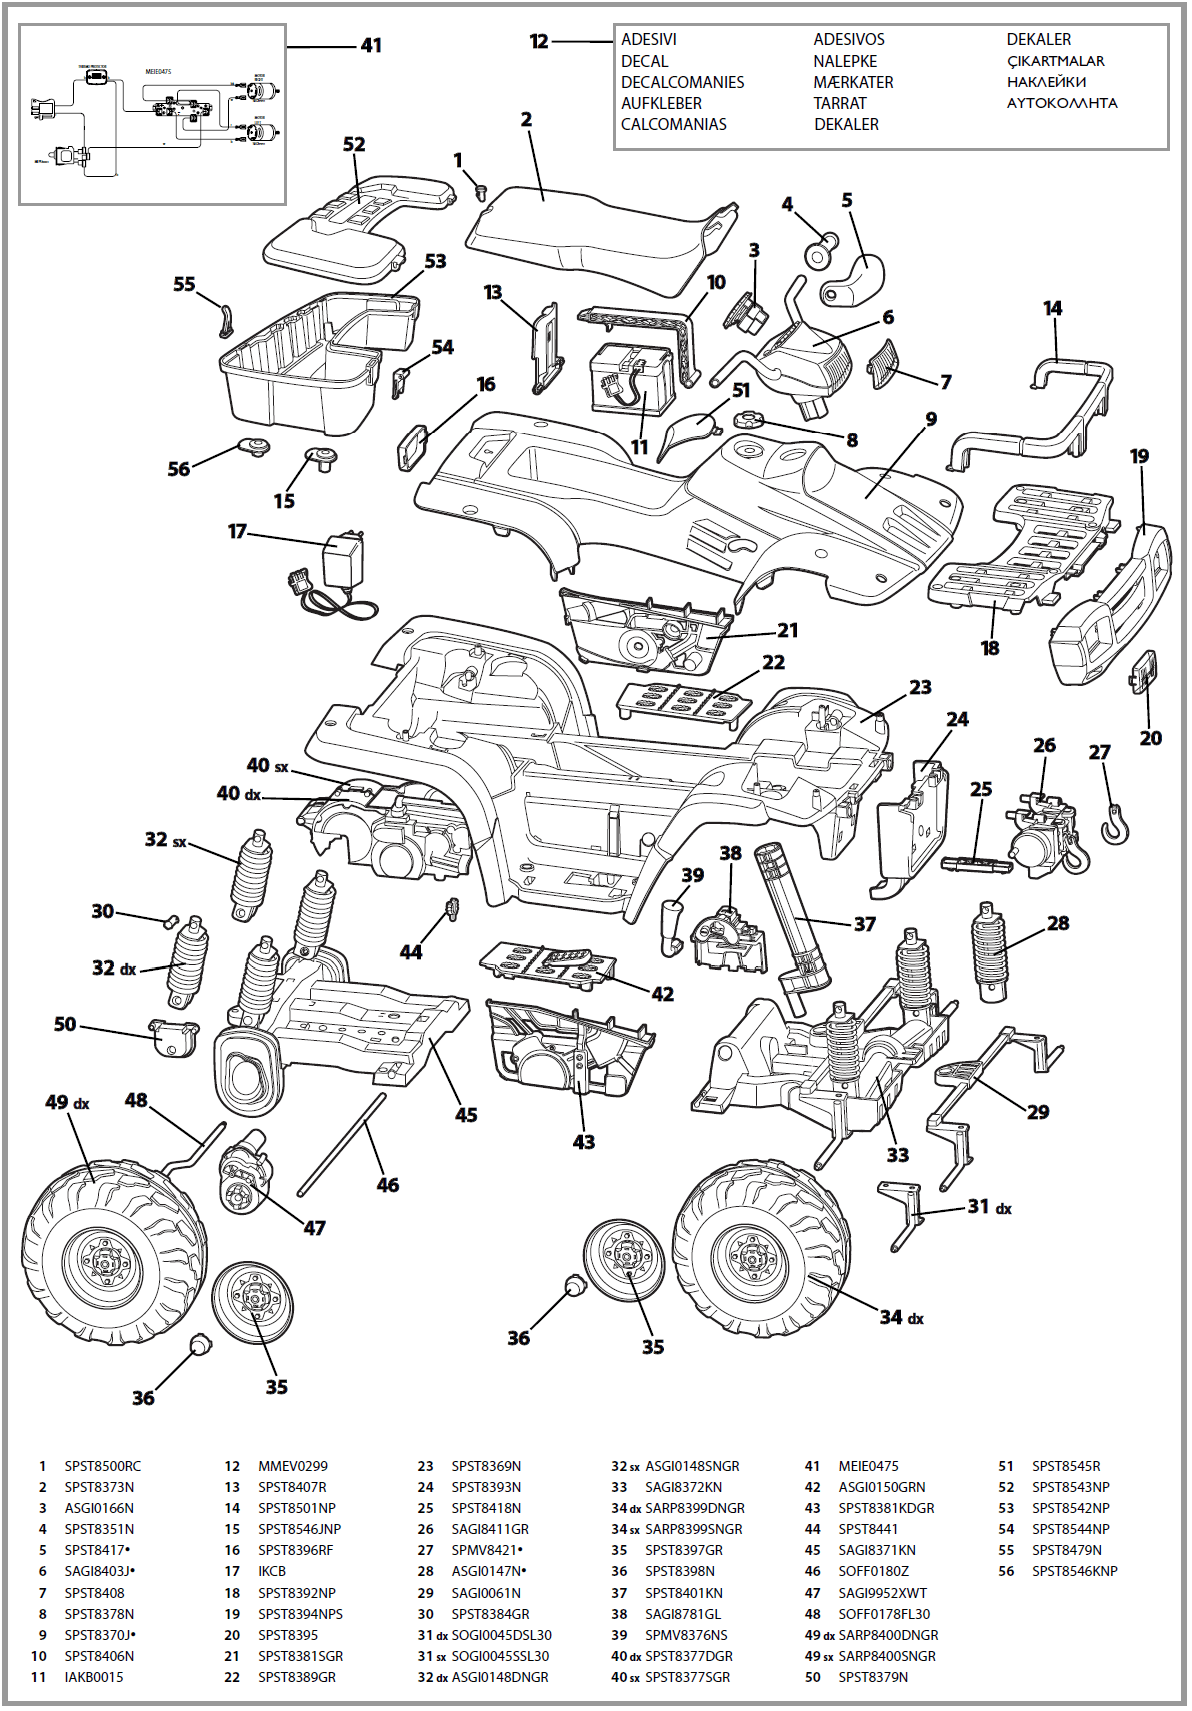 Polari Sportsman 850 Wiring Diagram